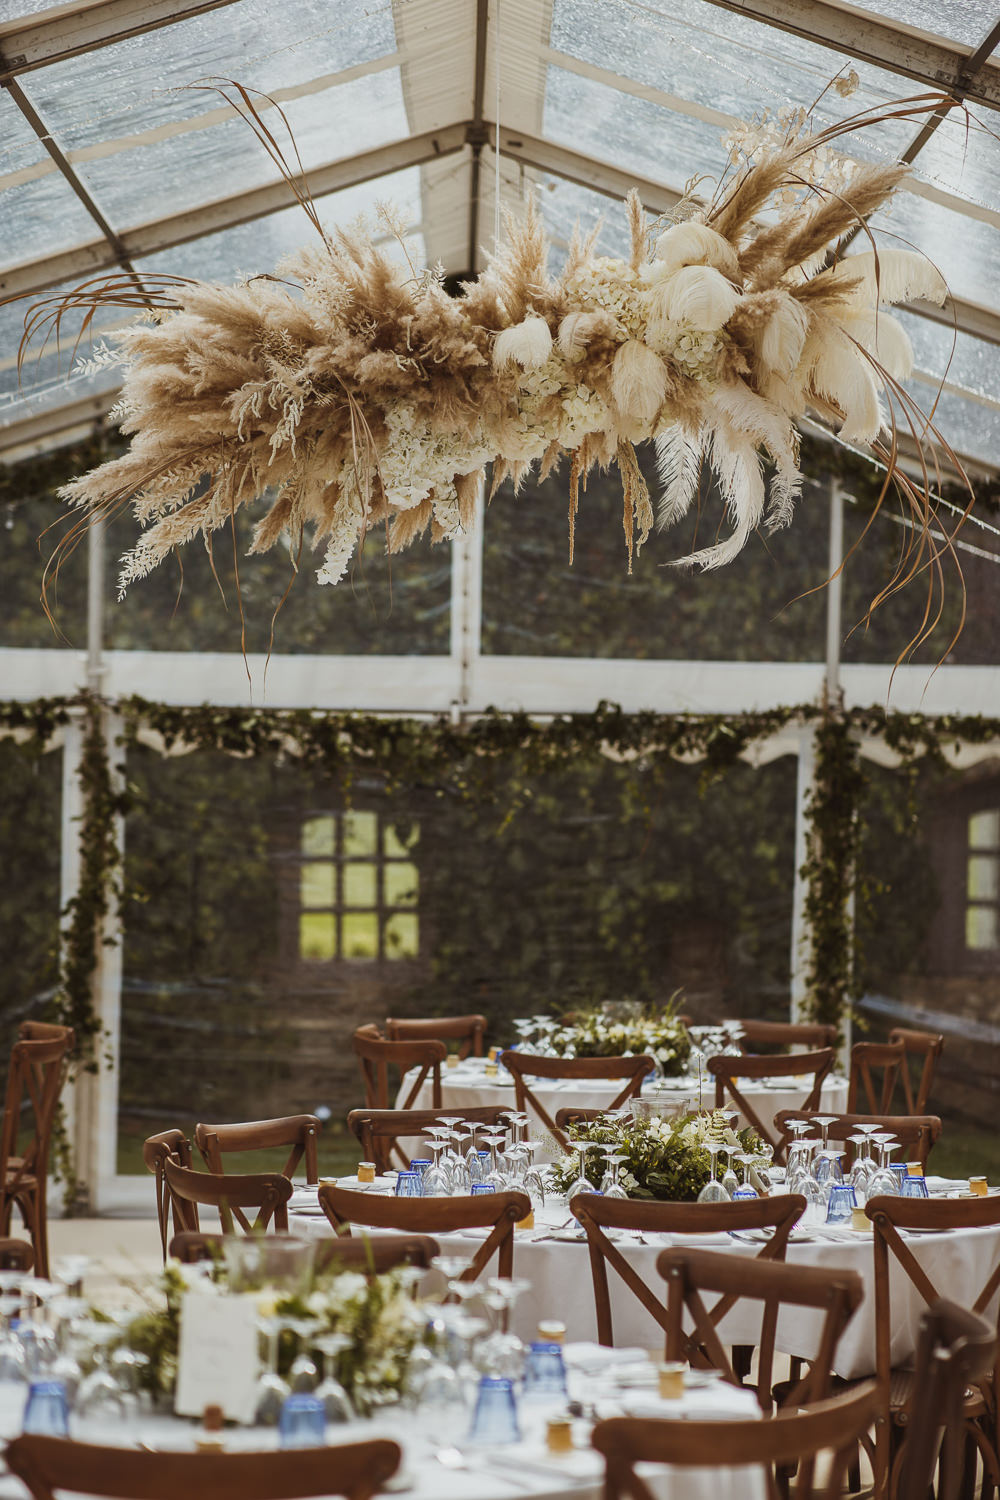 Clear Marquee Pampas Grass Cloud Flowers Hoop Decor Newburgh Priory Wedding Neil Jackson Photographic